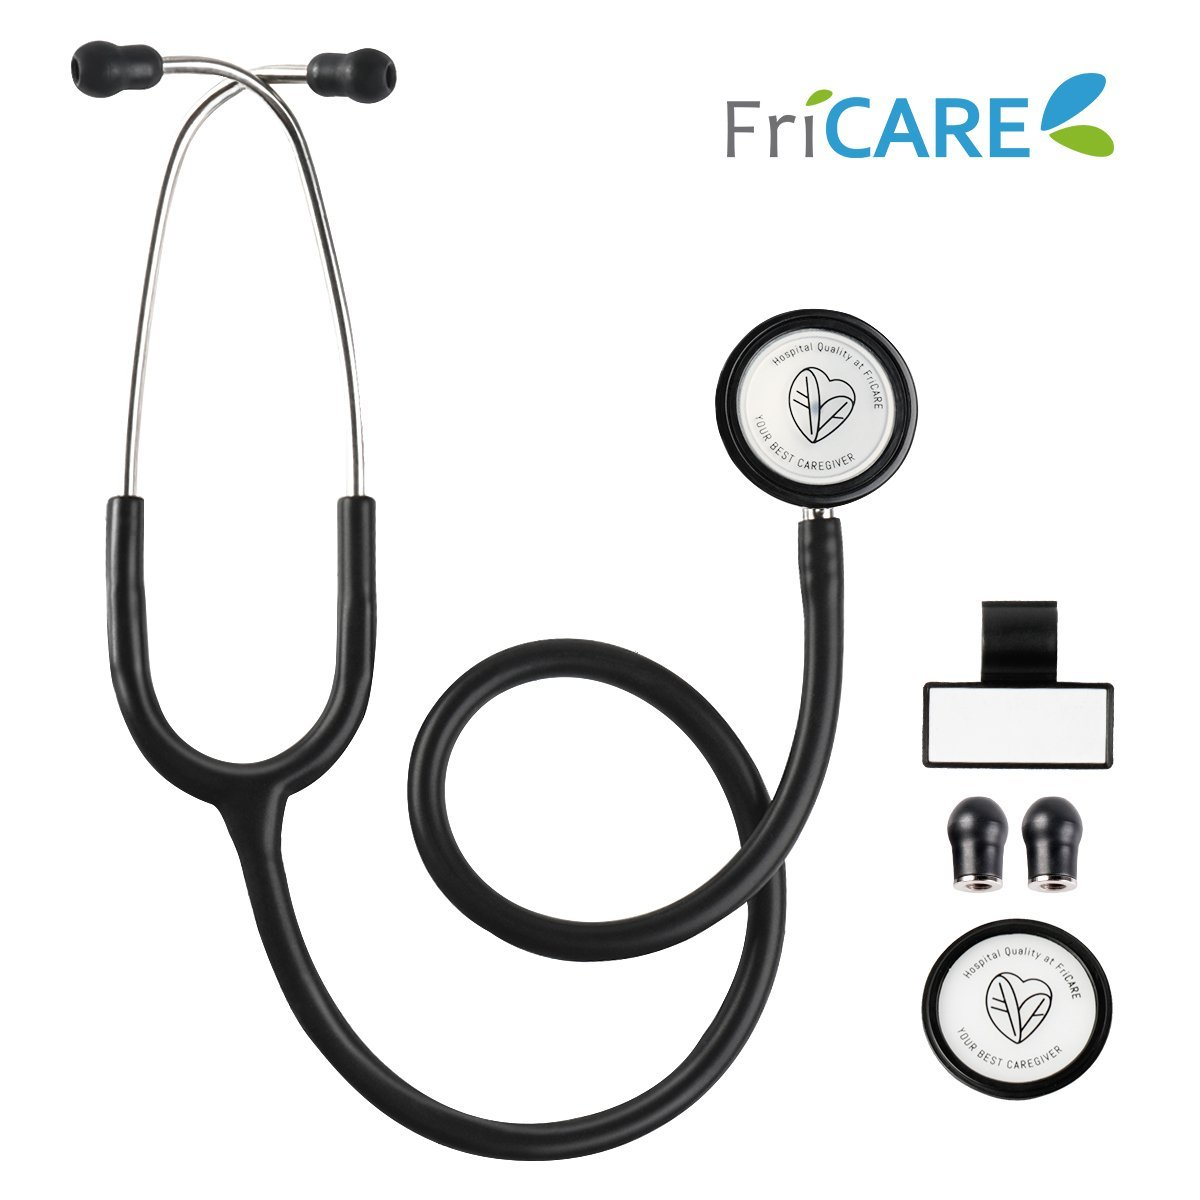 Dual Head Stethoscope for Medical and Home by FriCARE, Classic Lightweight Design, Stethoscope for Pediatric, Infant, Adult, Gift for Nurses, Medical Students, 28 inch (Black)